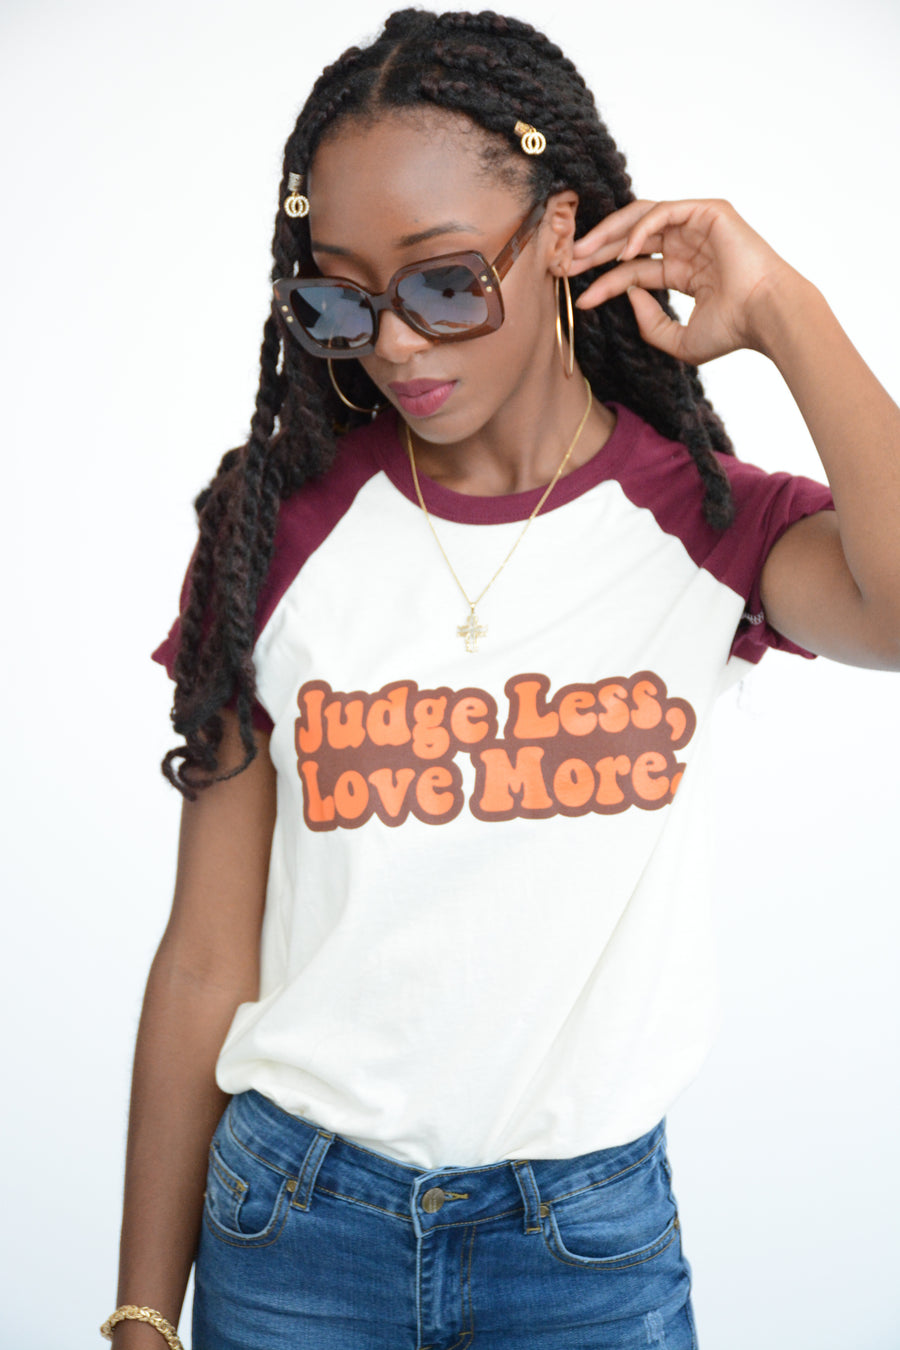 Judge Less, Love More. Unisex Tee